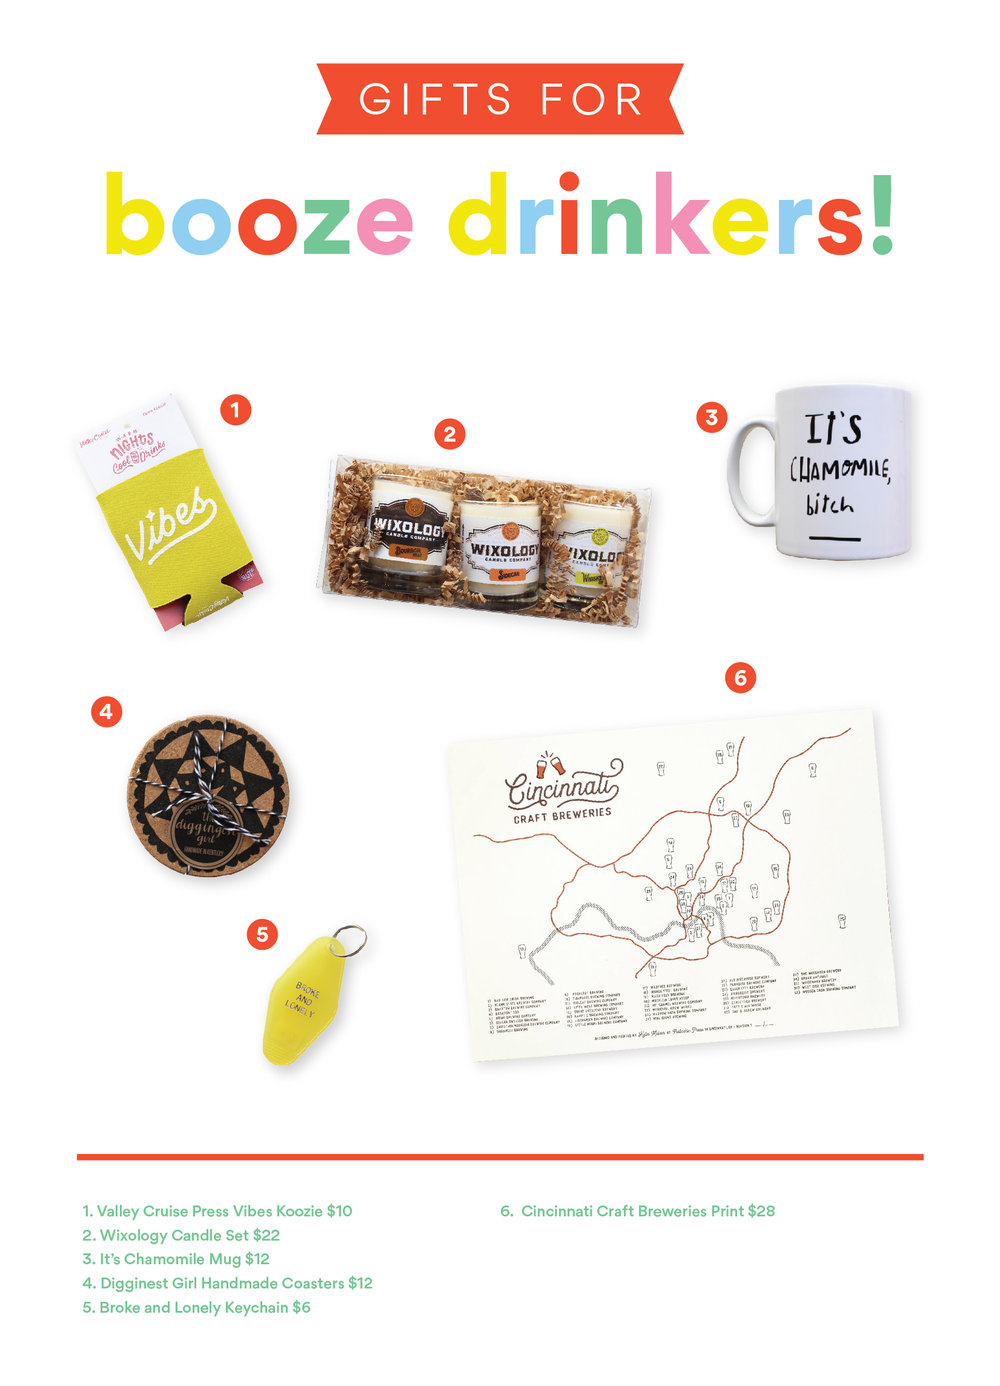 0373_Handzy_GiftGuide_BoozeDrinkers_A-1-01.jpg